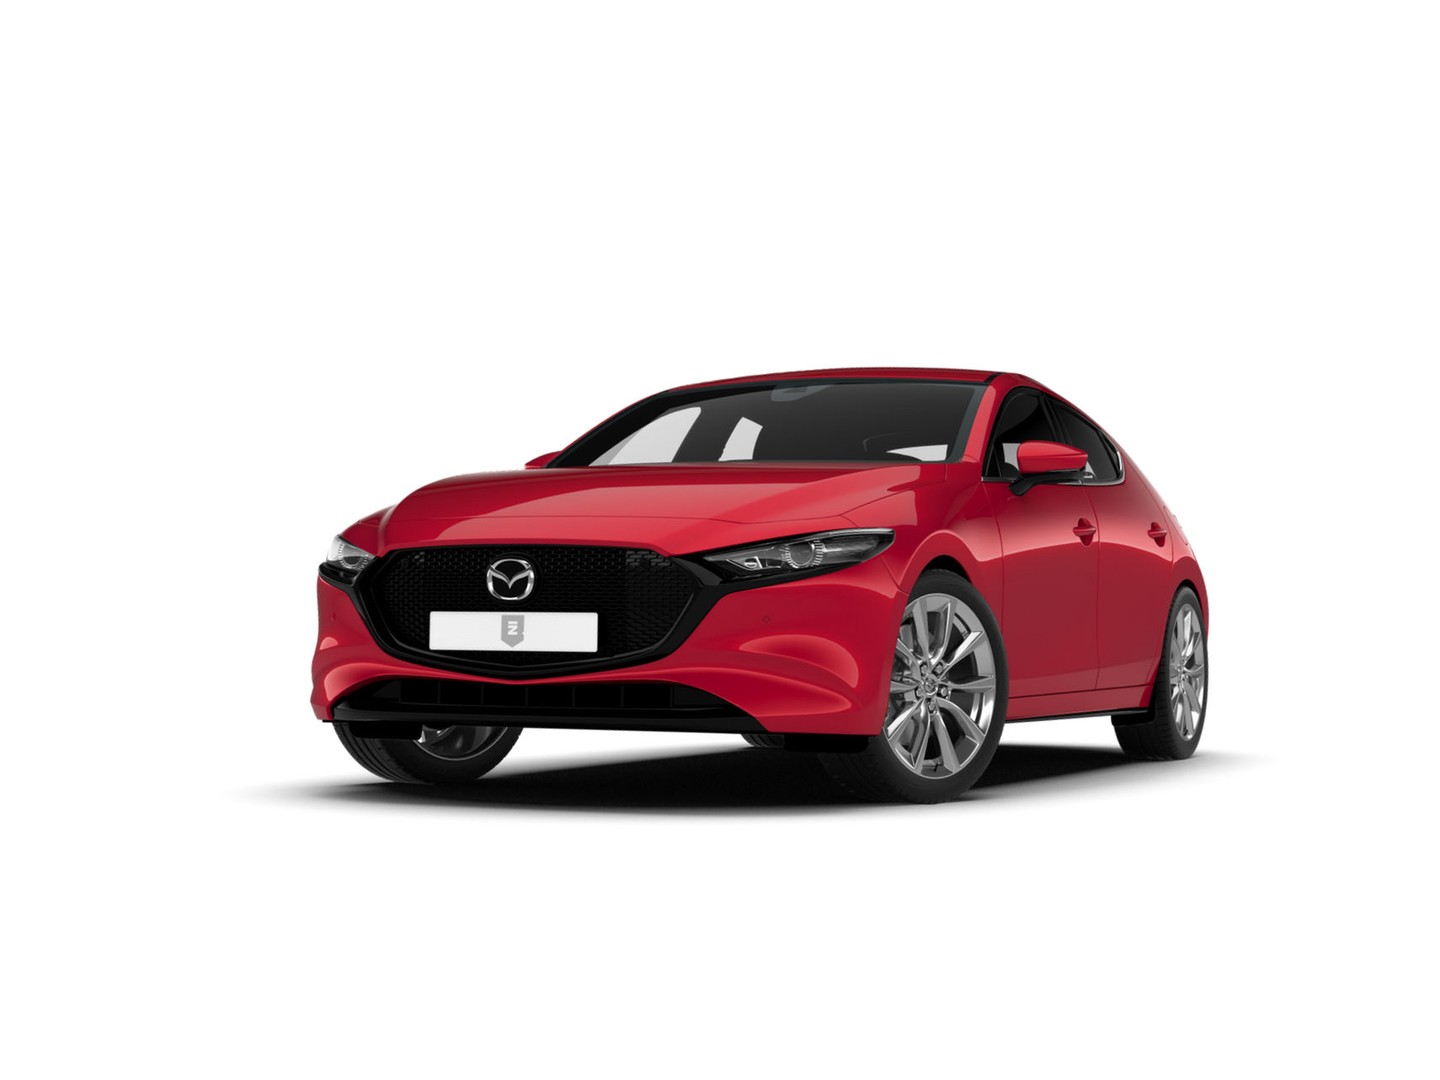 Mazda 3 Luxury hatchback